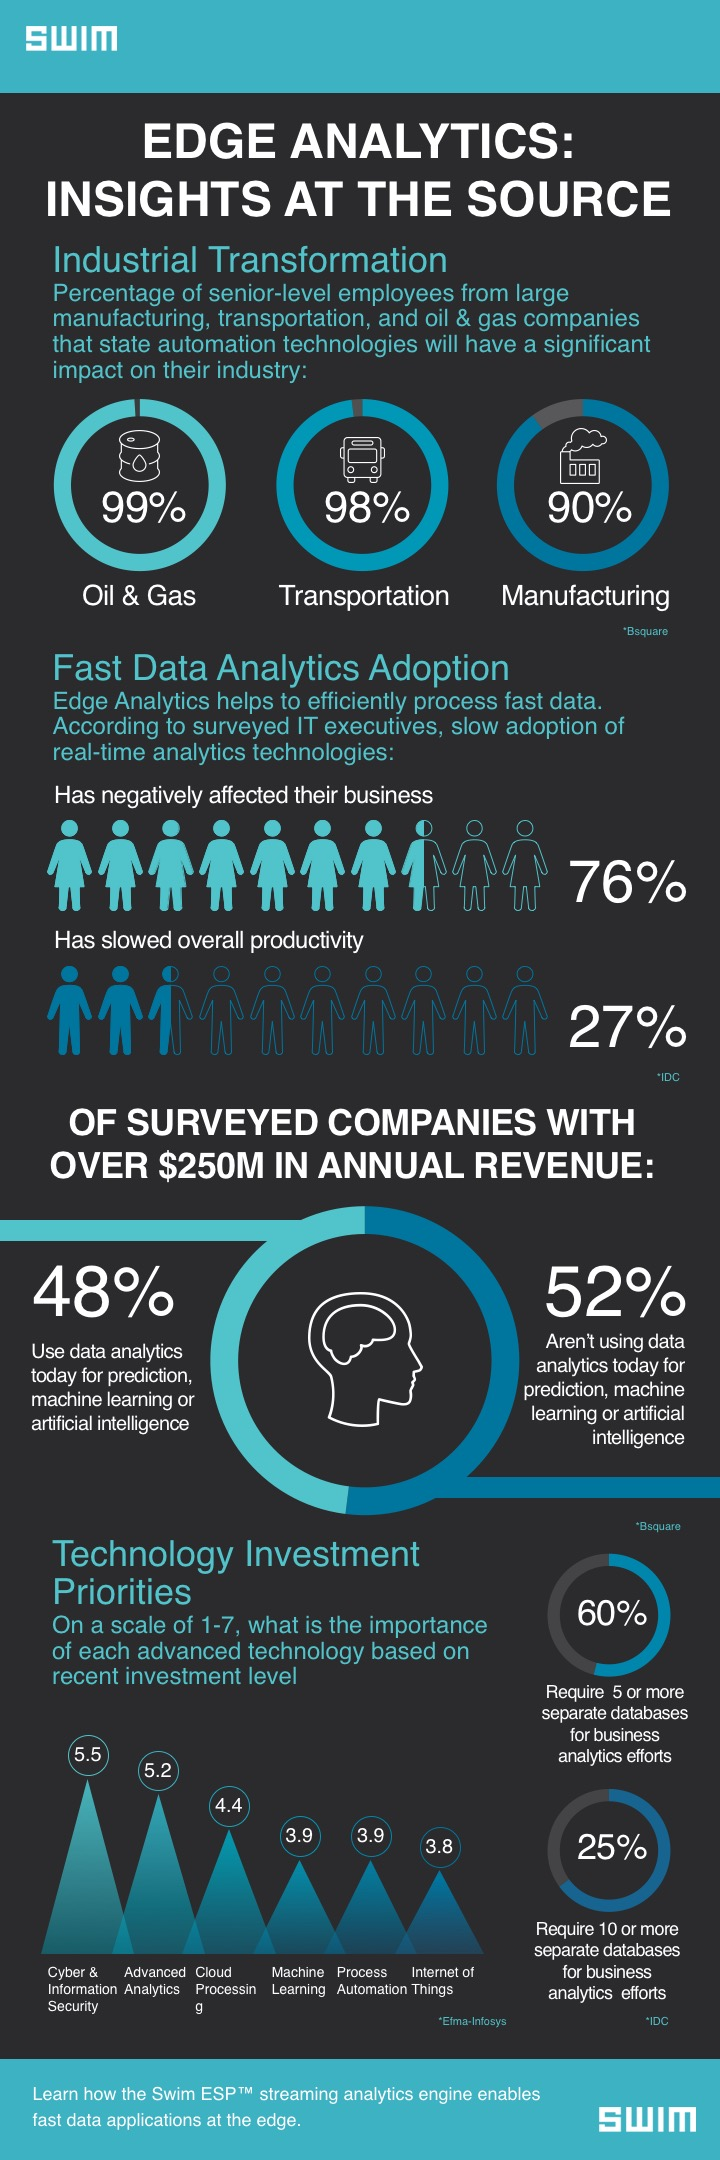 Swim_Edge Analytics - Insights at the Source_Infographic